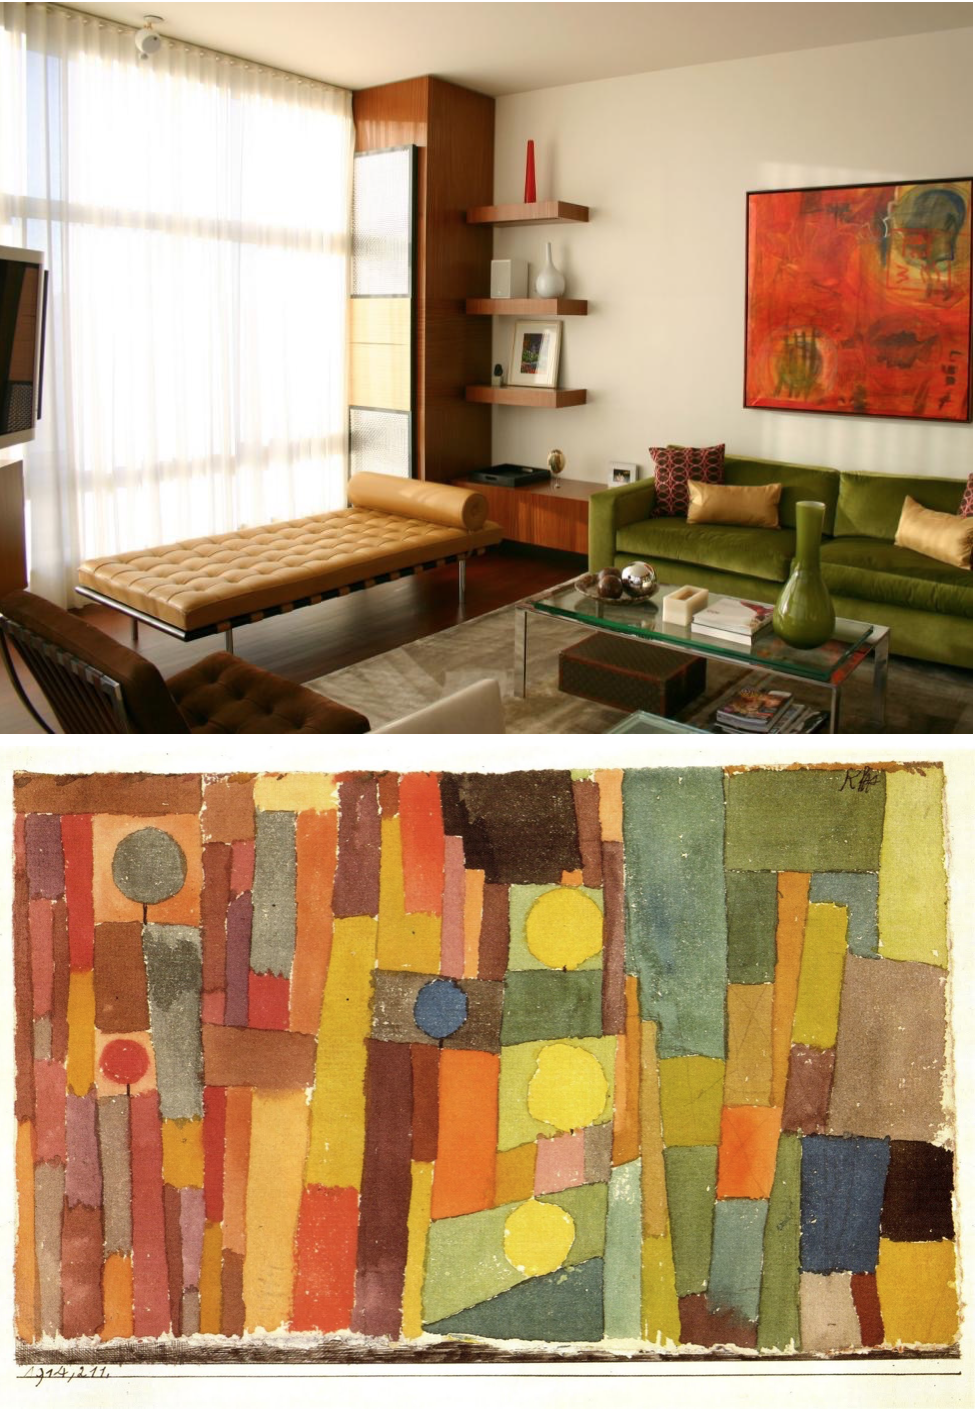 A  split-complement  color scheme, like the one used in this watercolor study by Paul Klee, allows for contrasting, dynamic hues that are also harmonious.  Images: HGTV, Pinterest .